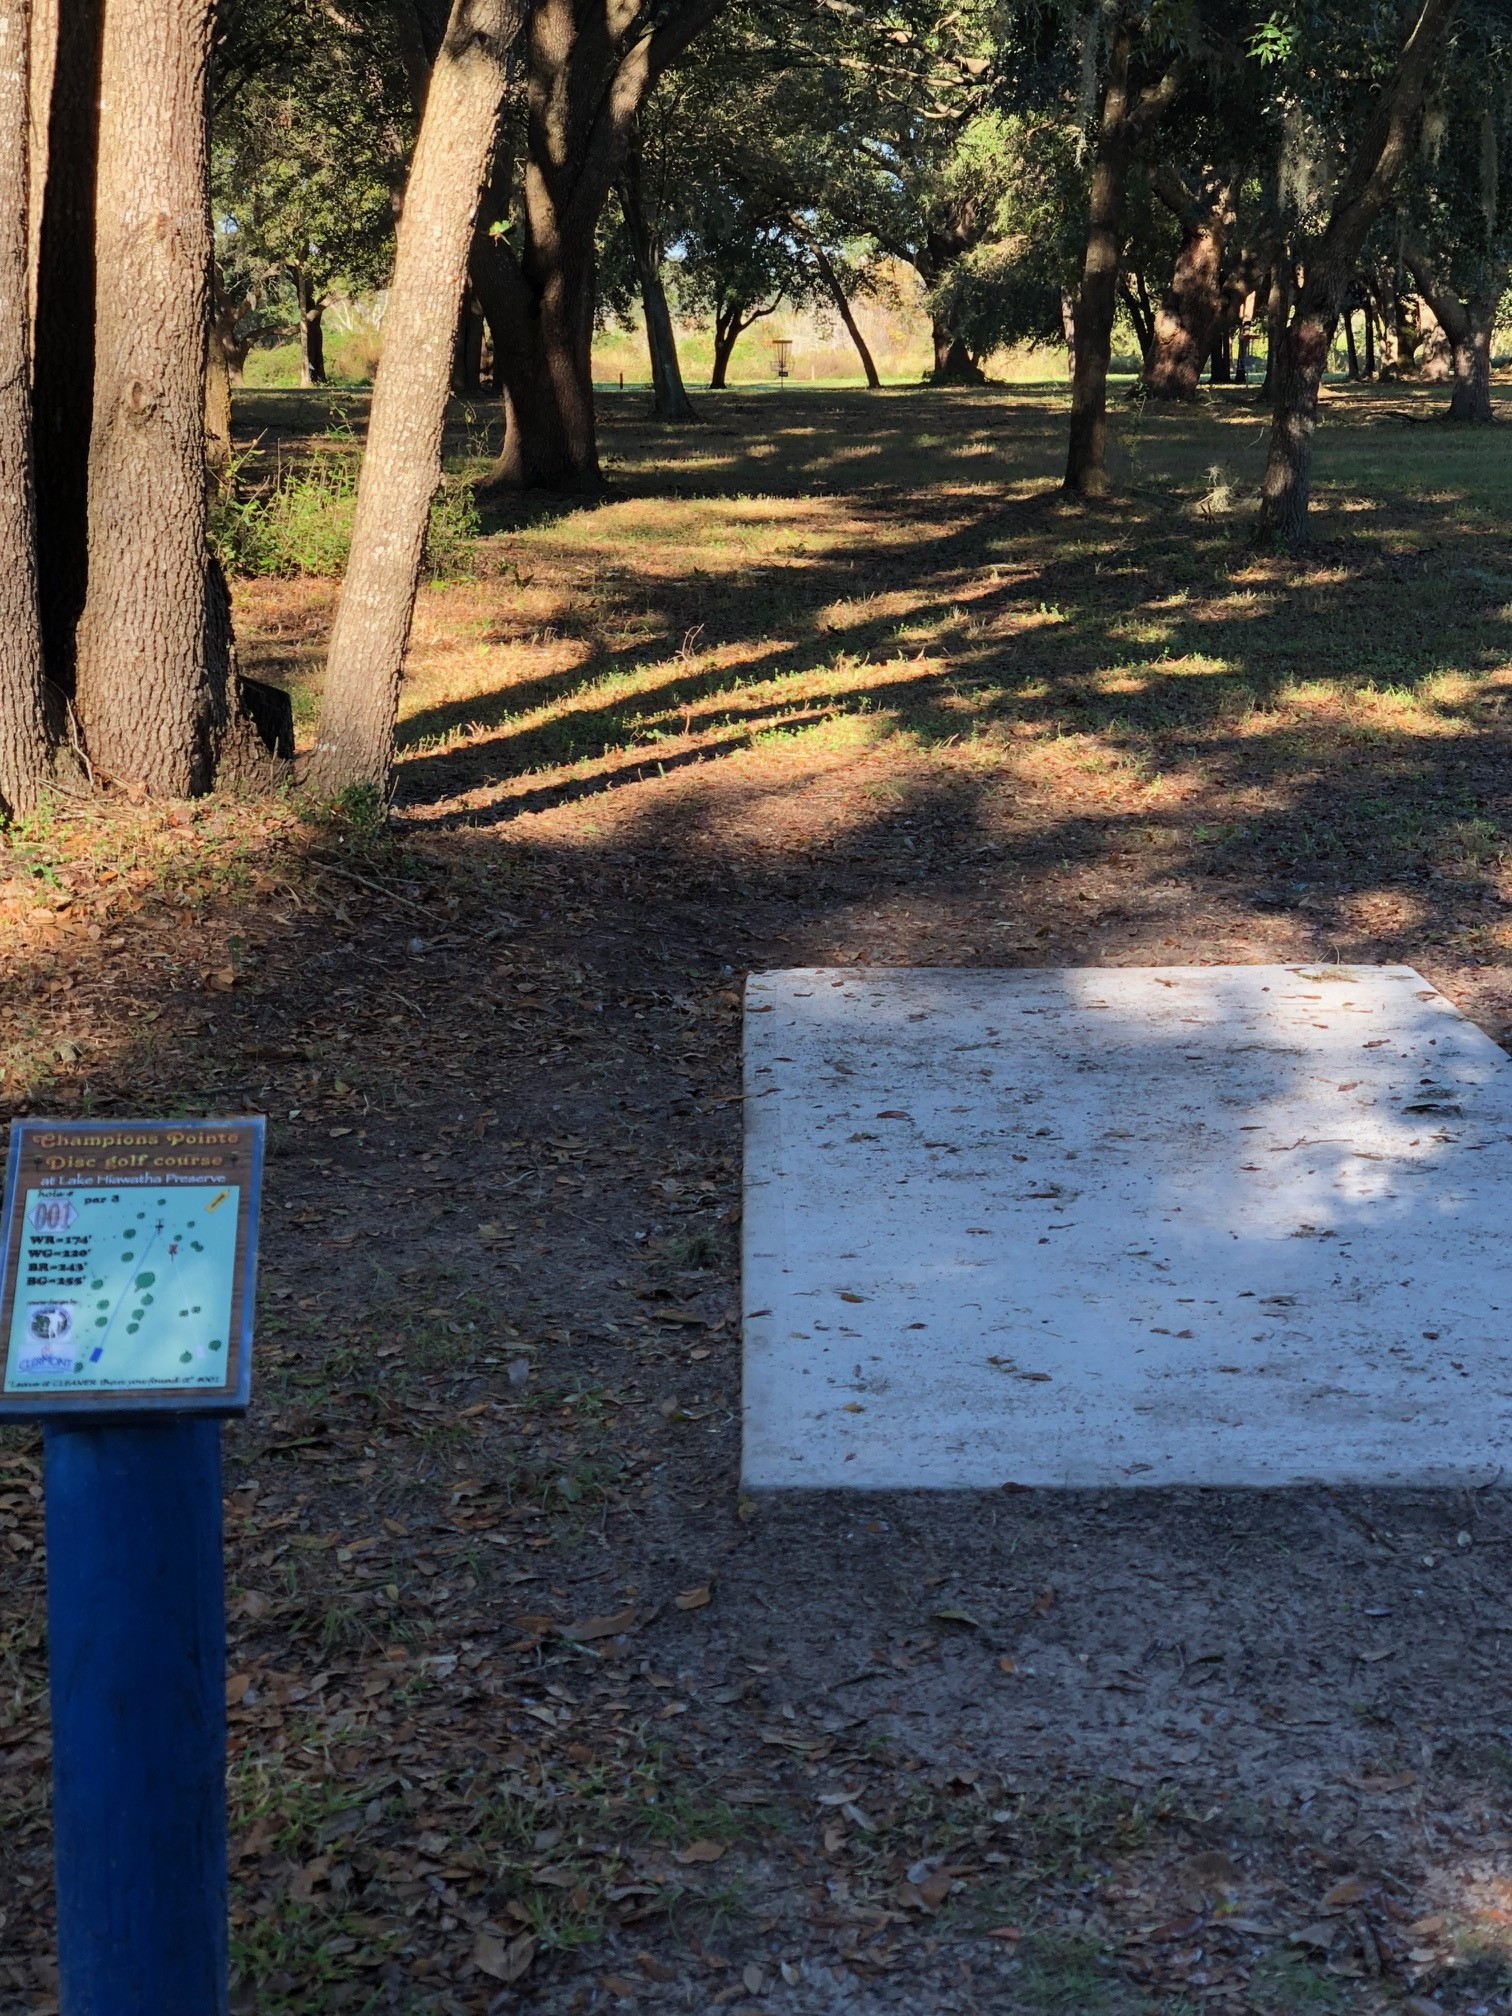 One of the stops on Clermont's disc golf course